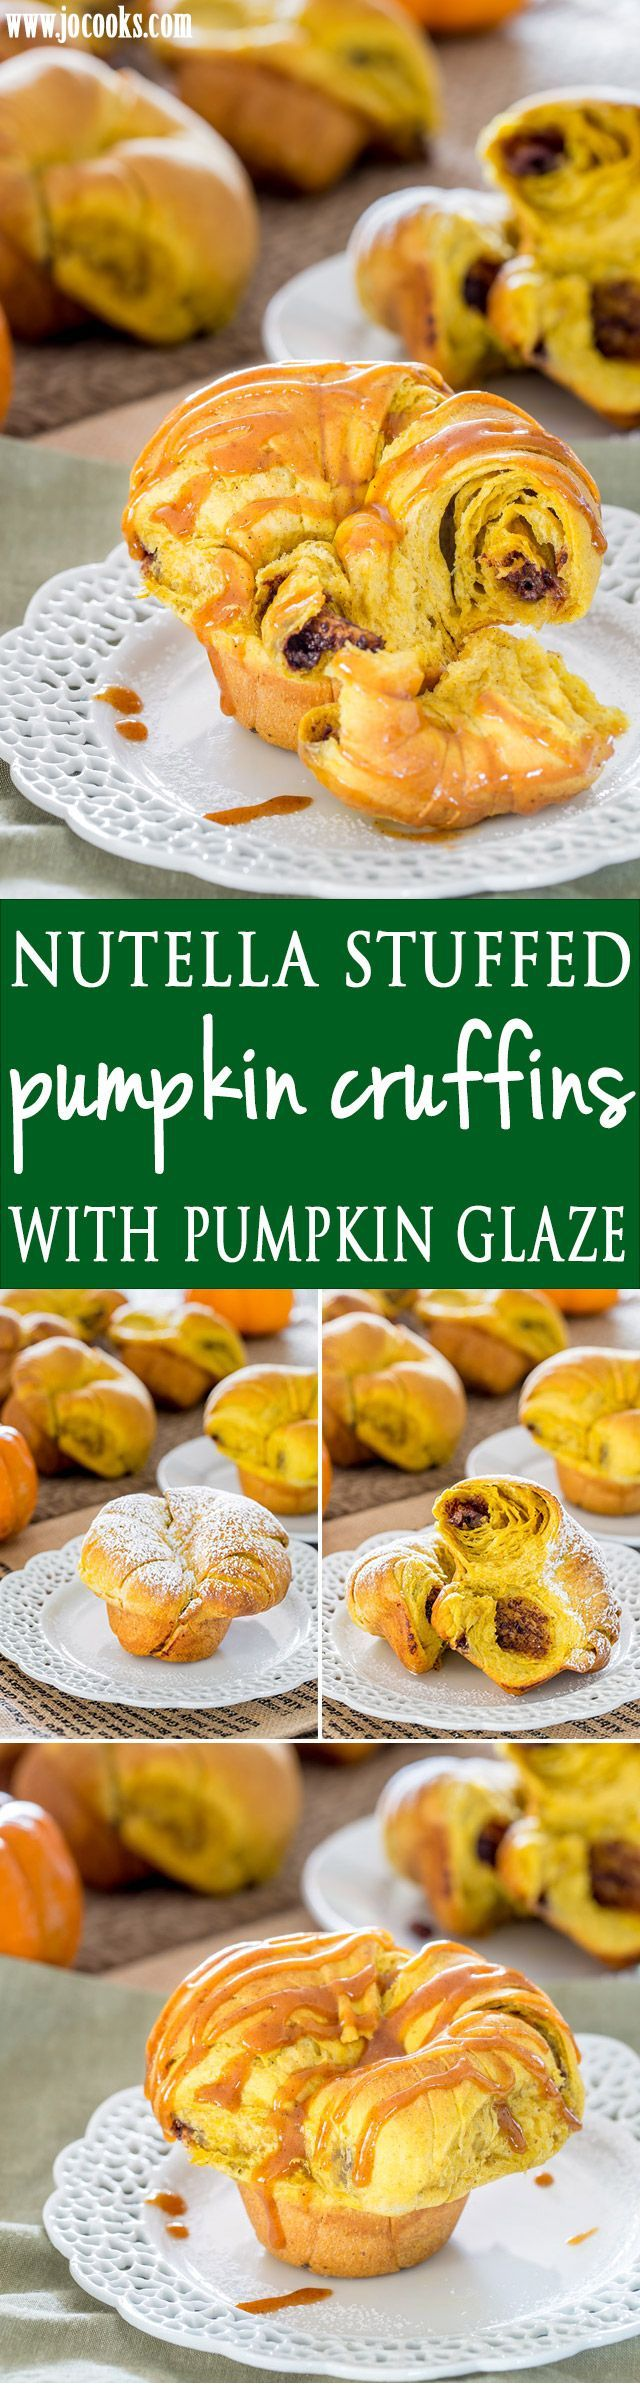 Nutella Stuffed Pumpkin Cruffins with Pumpkin Glaze - a cross between a muffin and a croissant these cruffins are amazing. No chilling, no folding, no copious amount of butter required, yet still flaky and delicious.